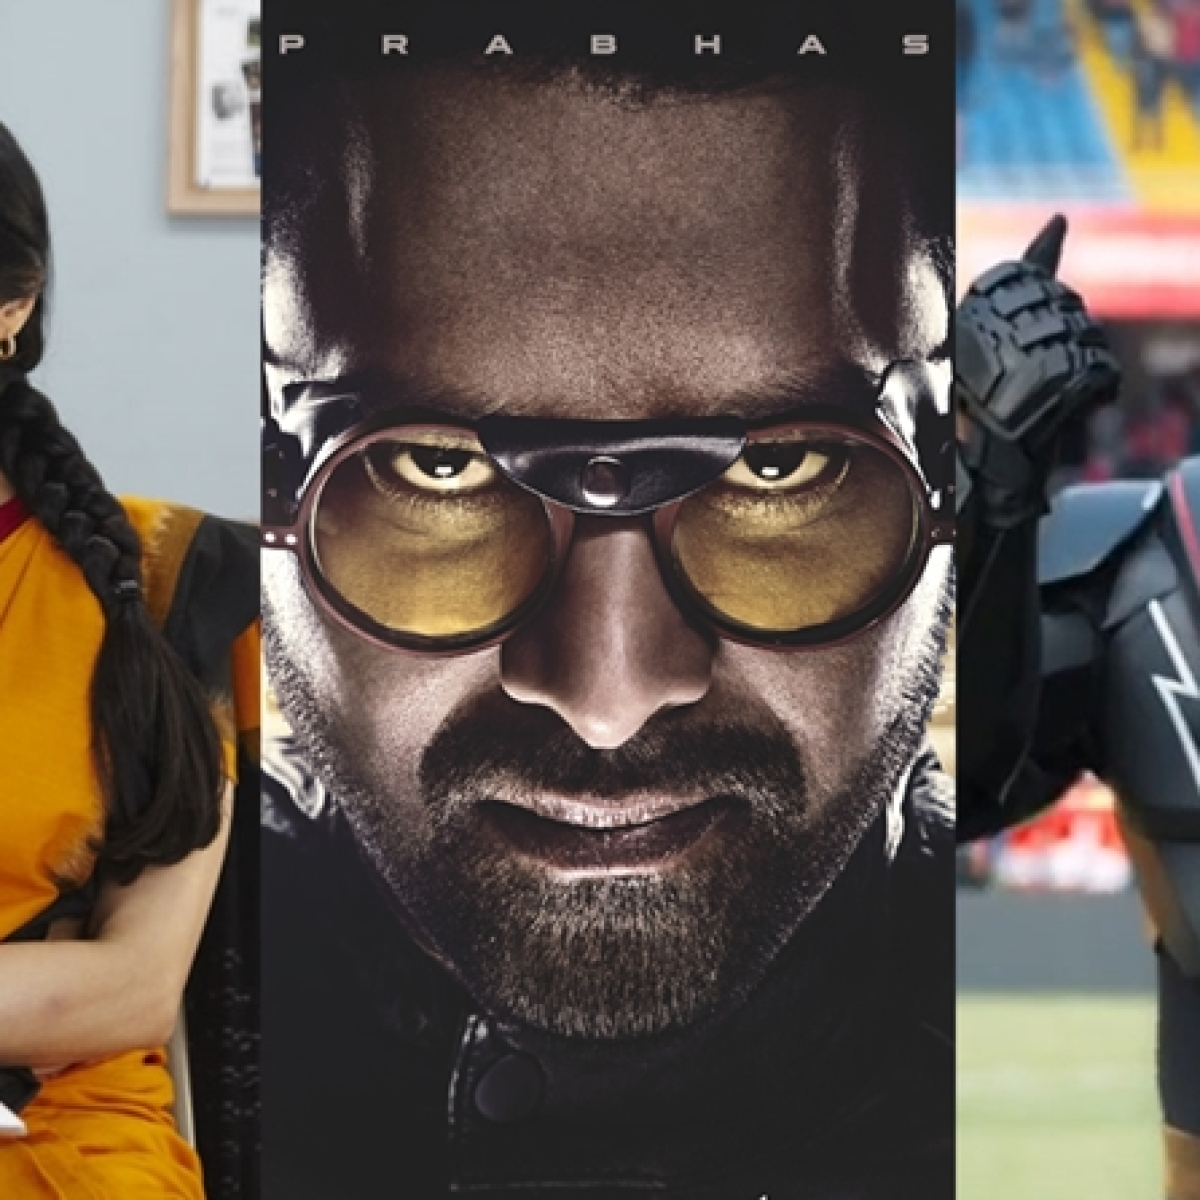 With Saaho's multilingual profit raking debut, is it time Bollywood stops fixating on one language?